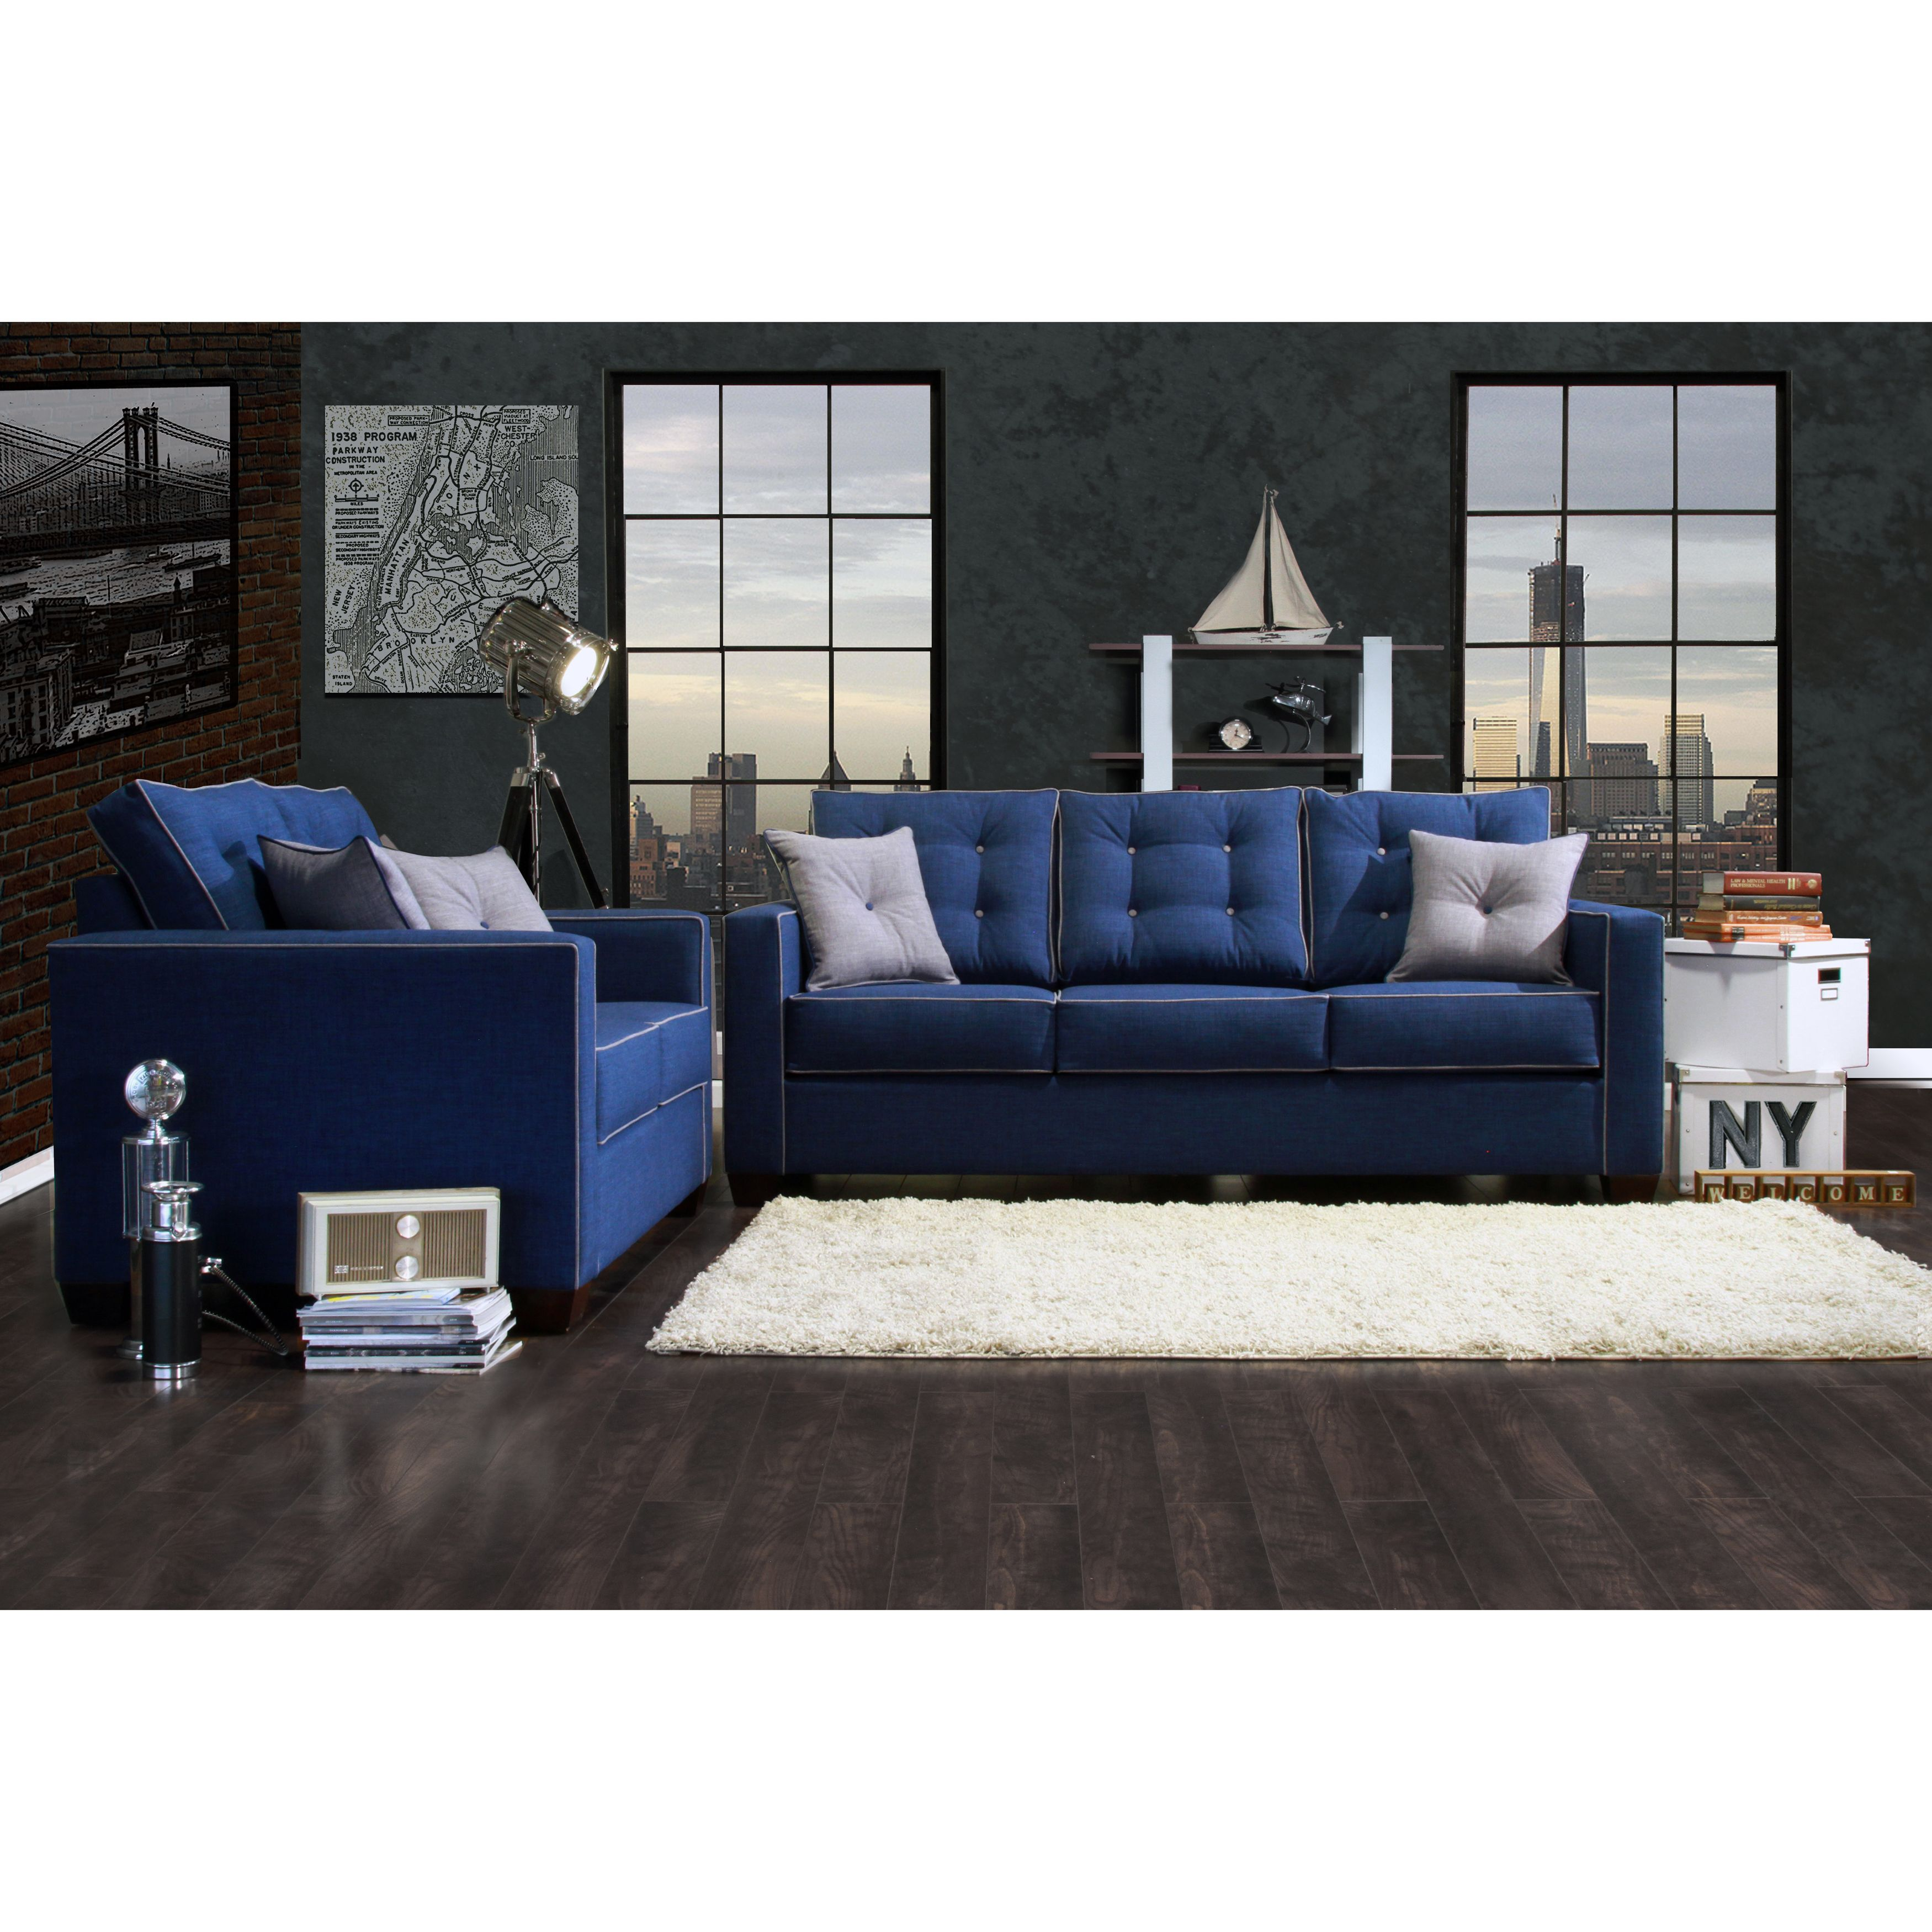 Furniture Of America Lennons Urban Upholstered Sofa Set Ping Great Deals On Sofas Loveseats